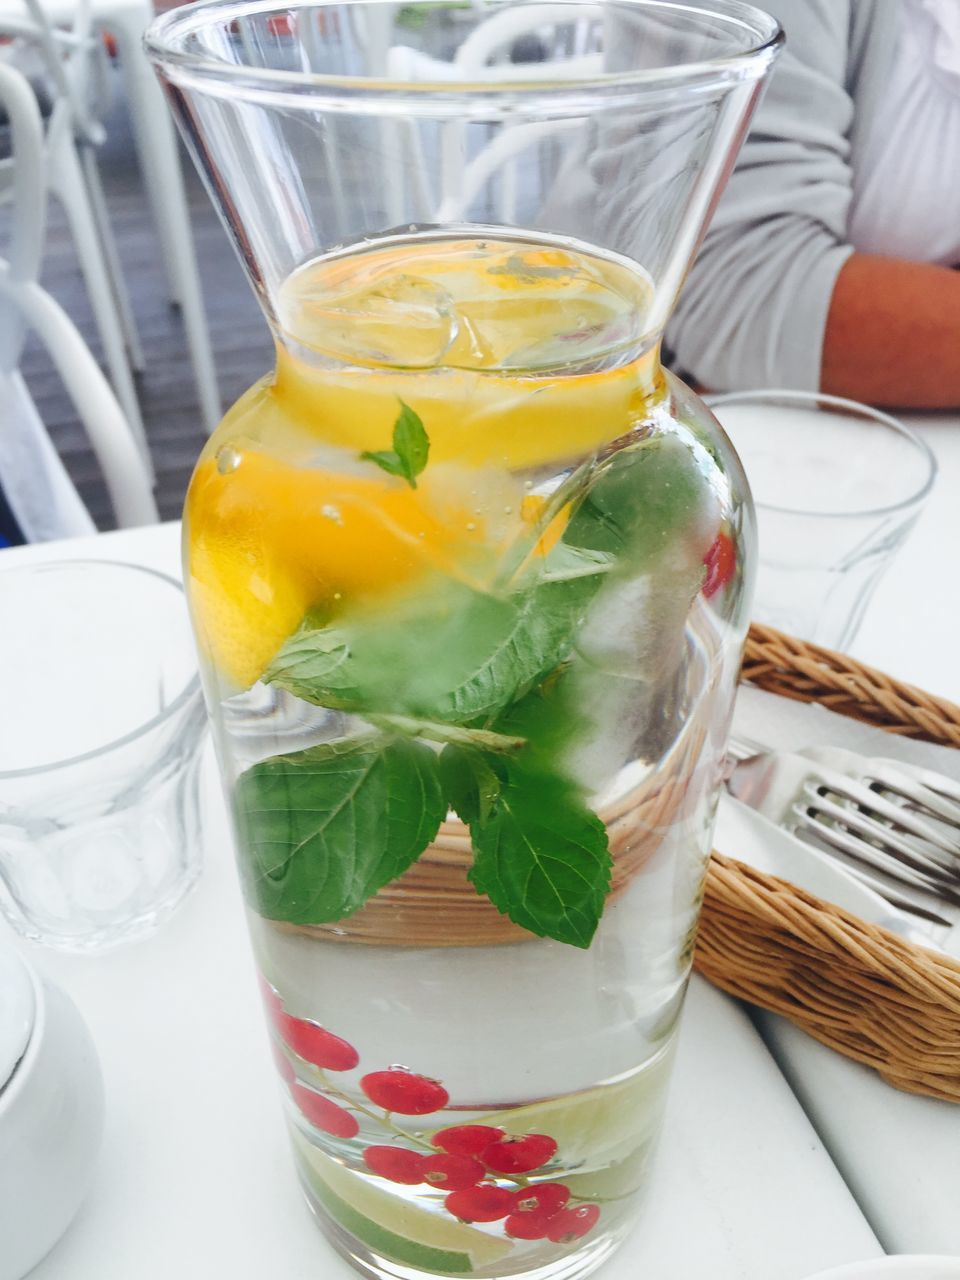 Close-Up Of Fresh Drink In Glass Container On Table